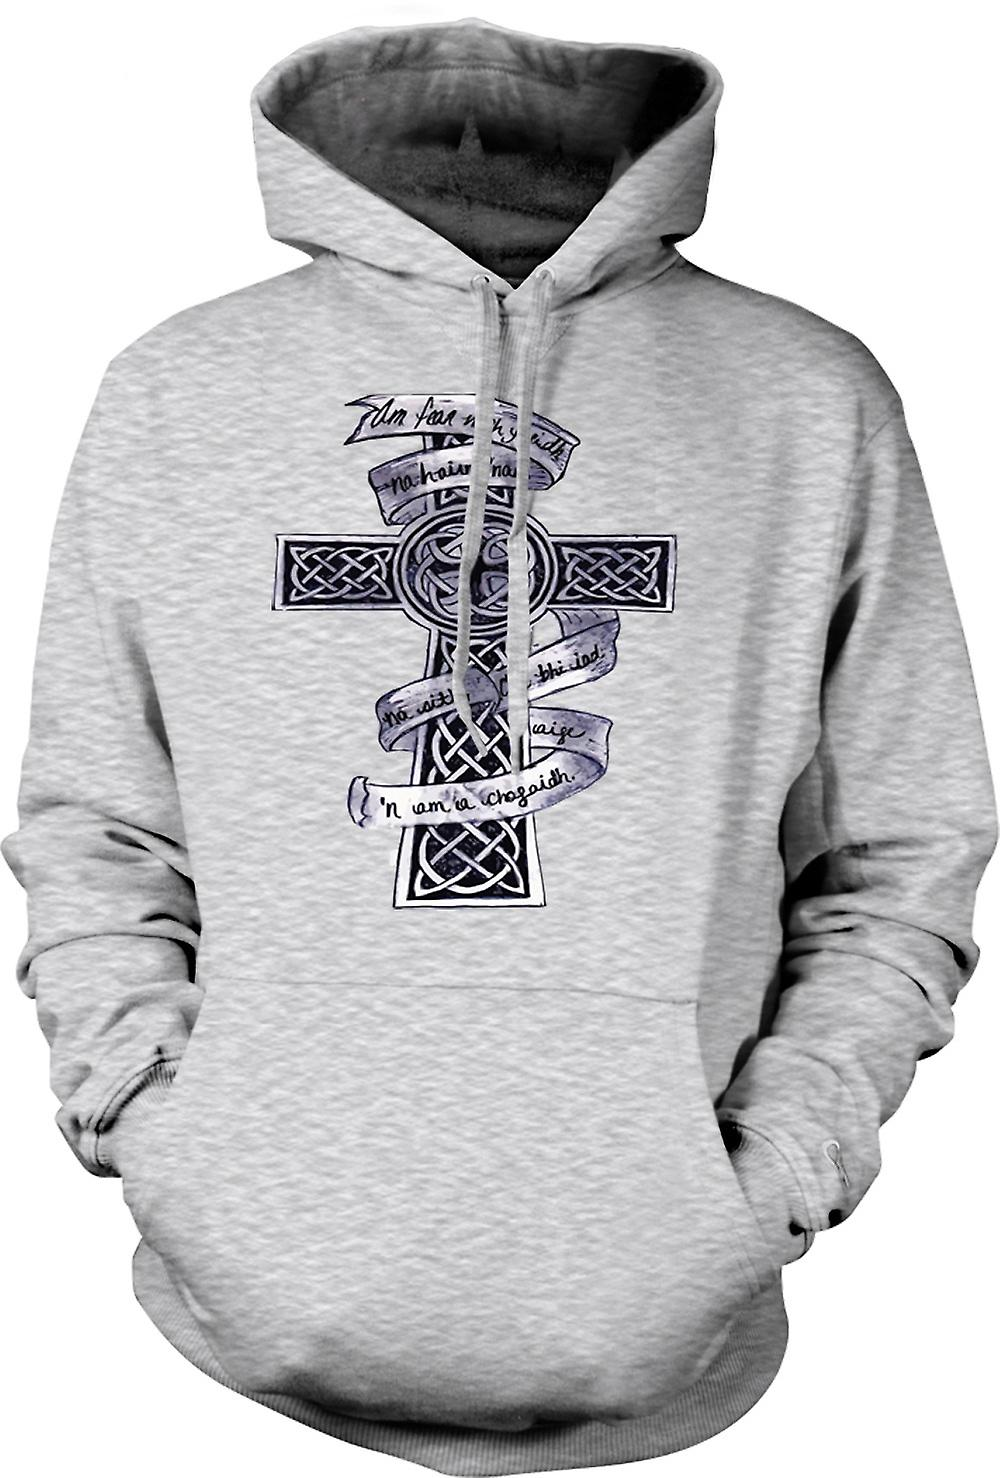 Mens Hoodie - Celtic Cross Tribal Tattoo